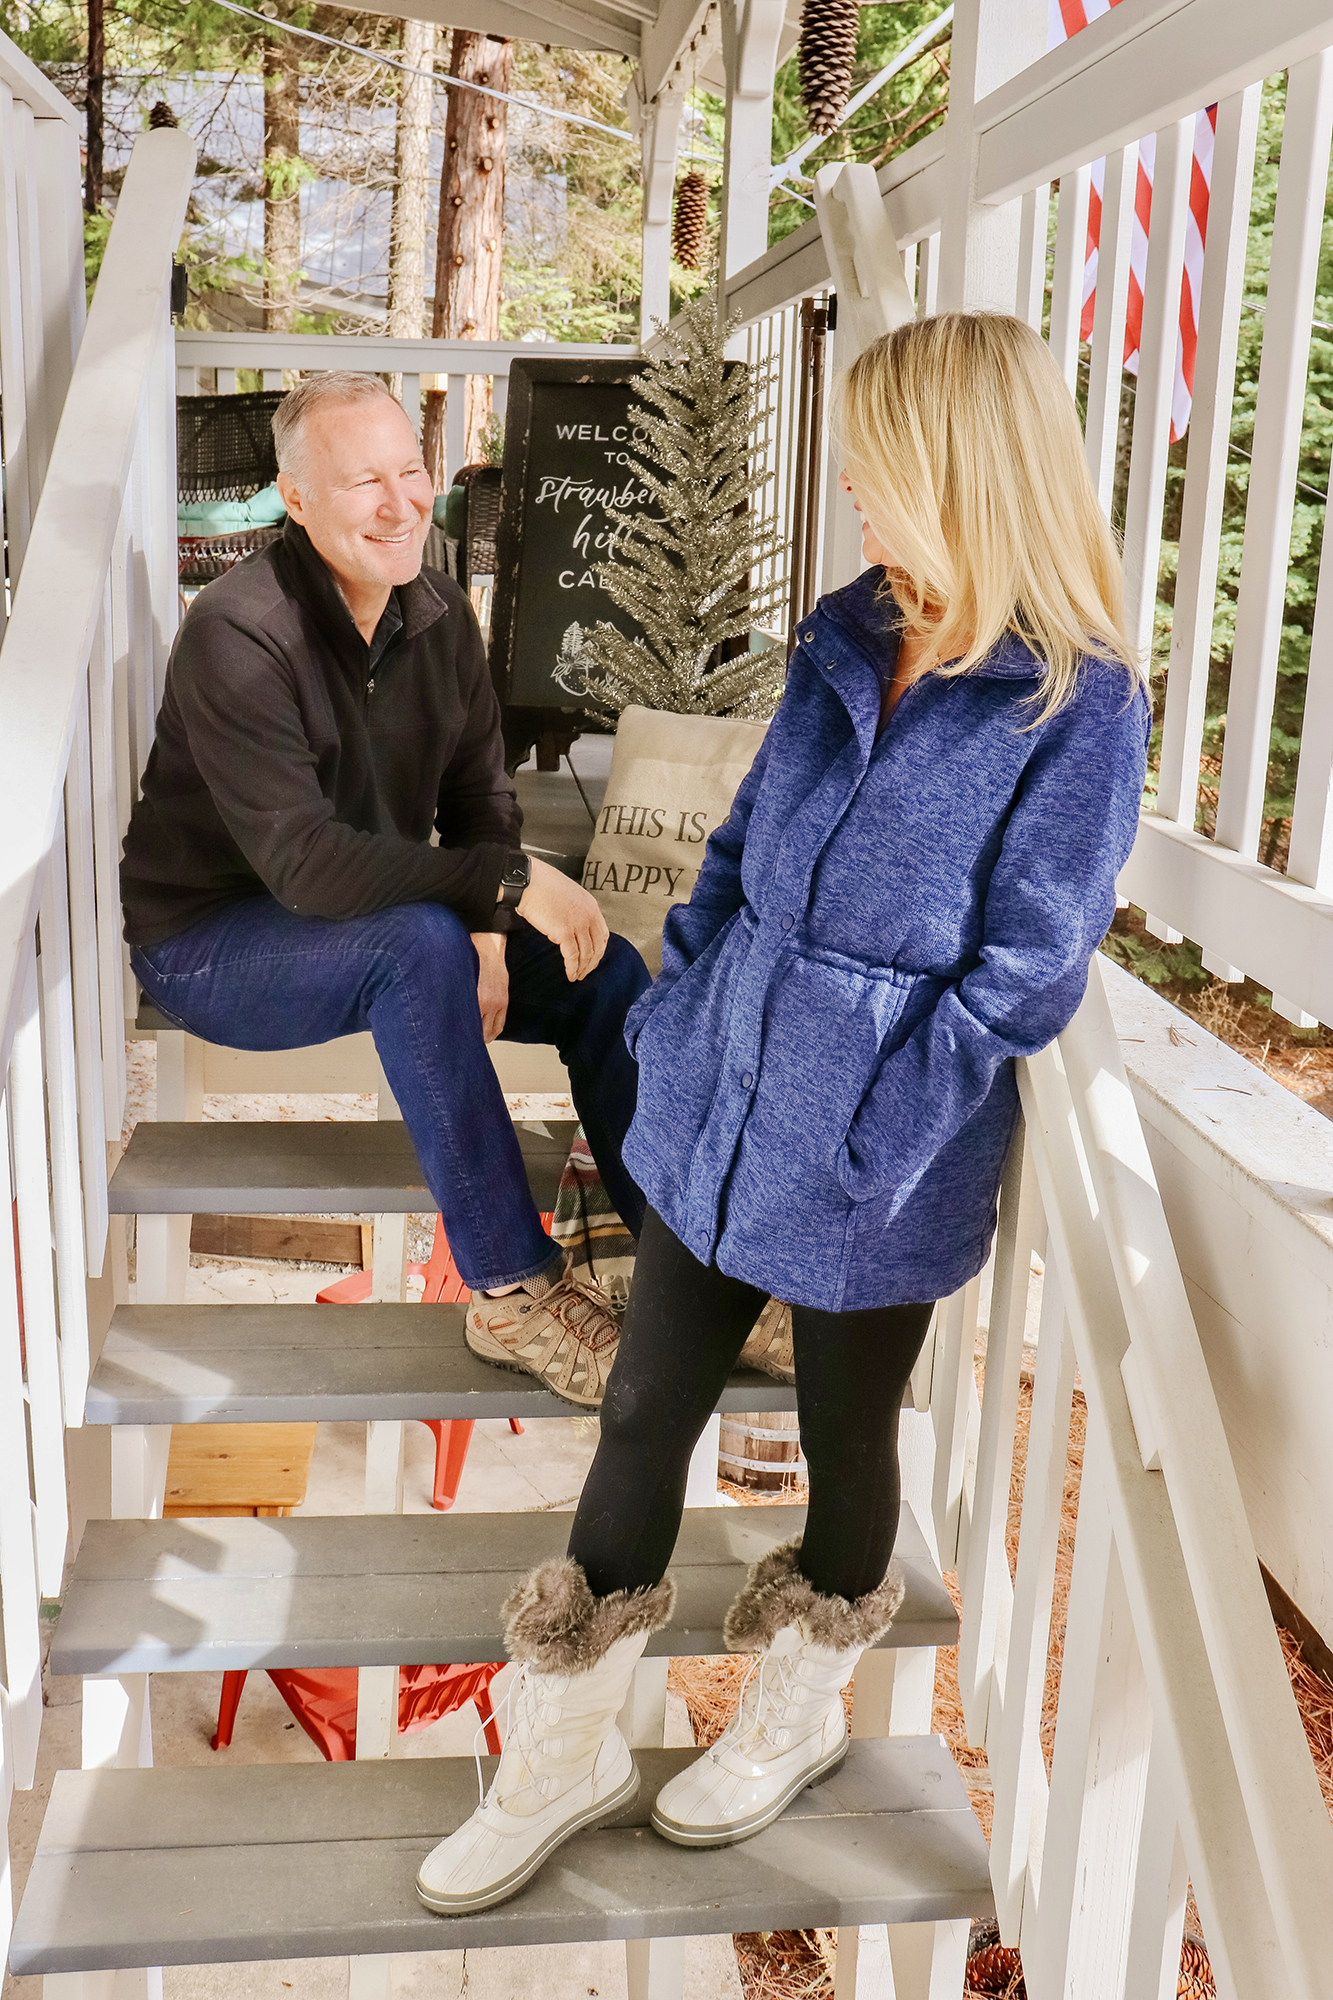 Coziest Winter Wear & Holiday Gifts at the Lake - Lands End winterwear review - up to 60% off. Our favorite warm and affordable jackets and other options.